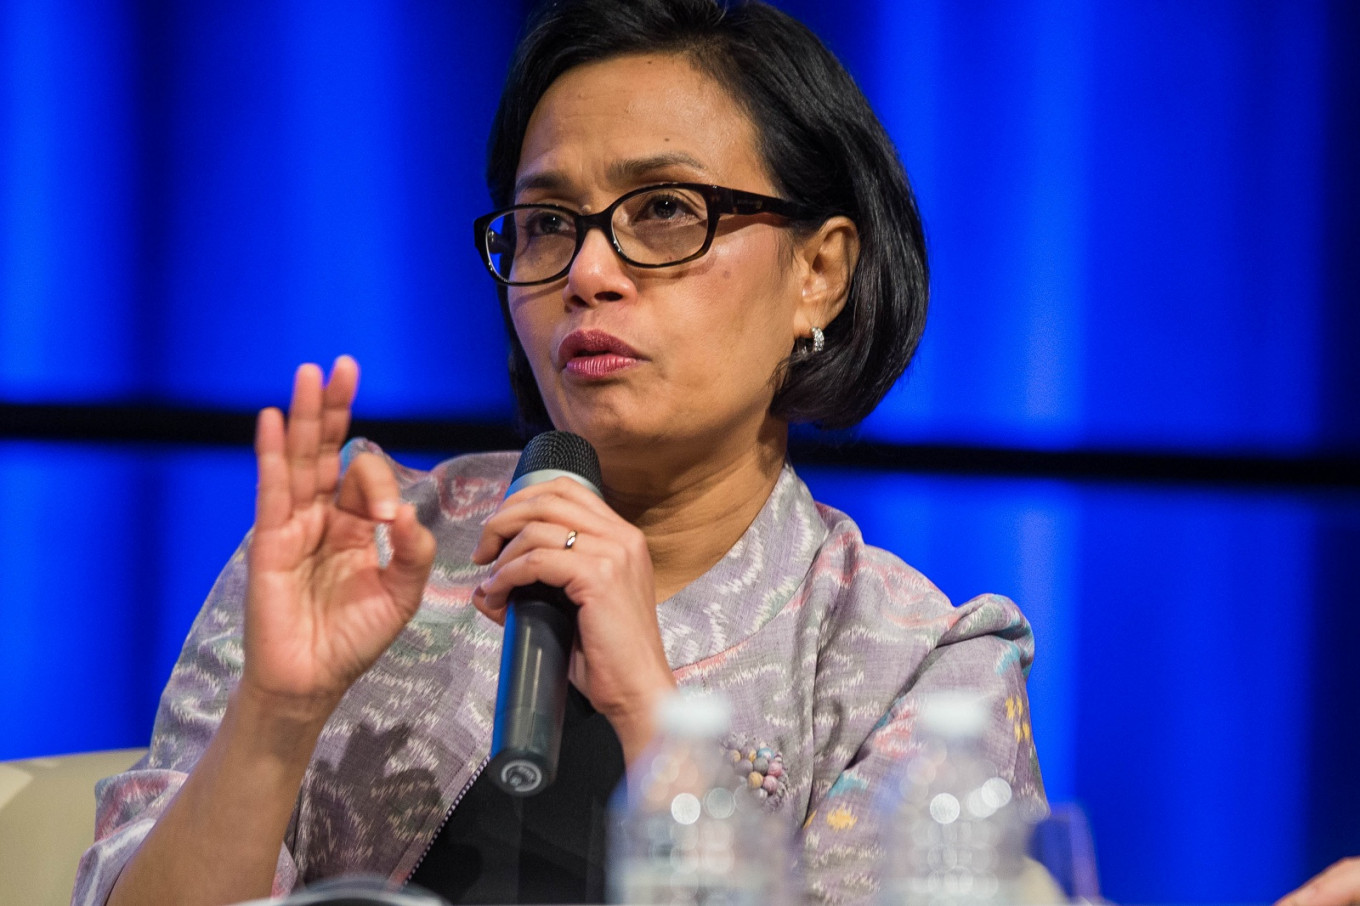 Sri Mulyani responds to criticism about government debt